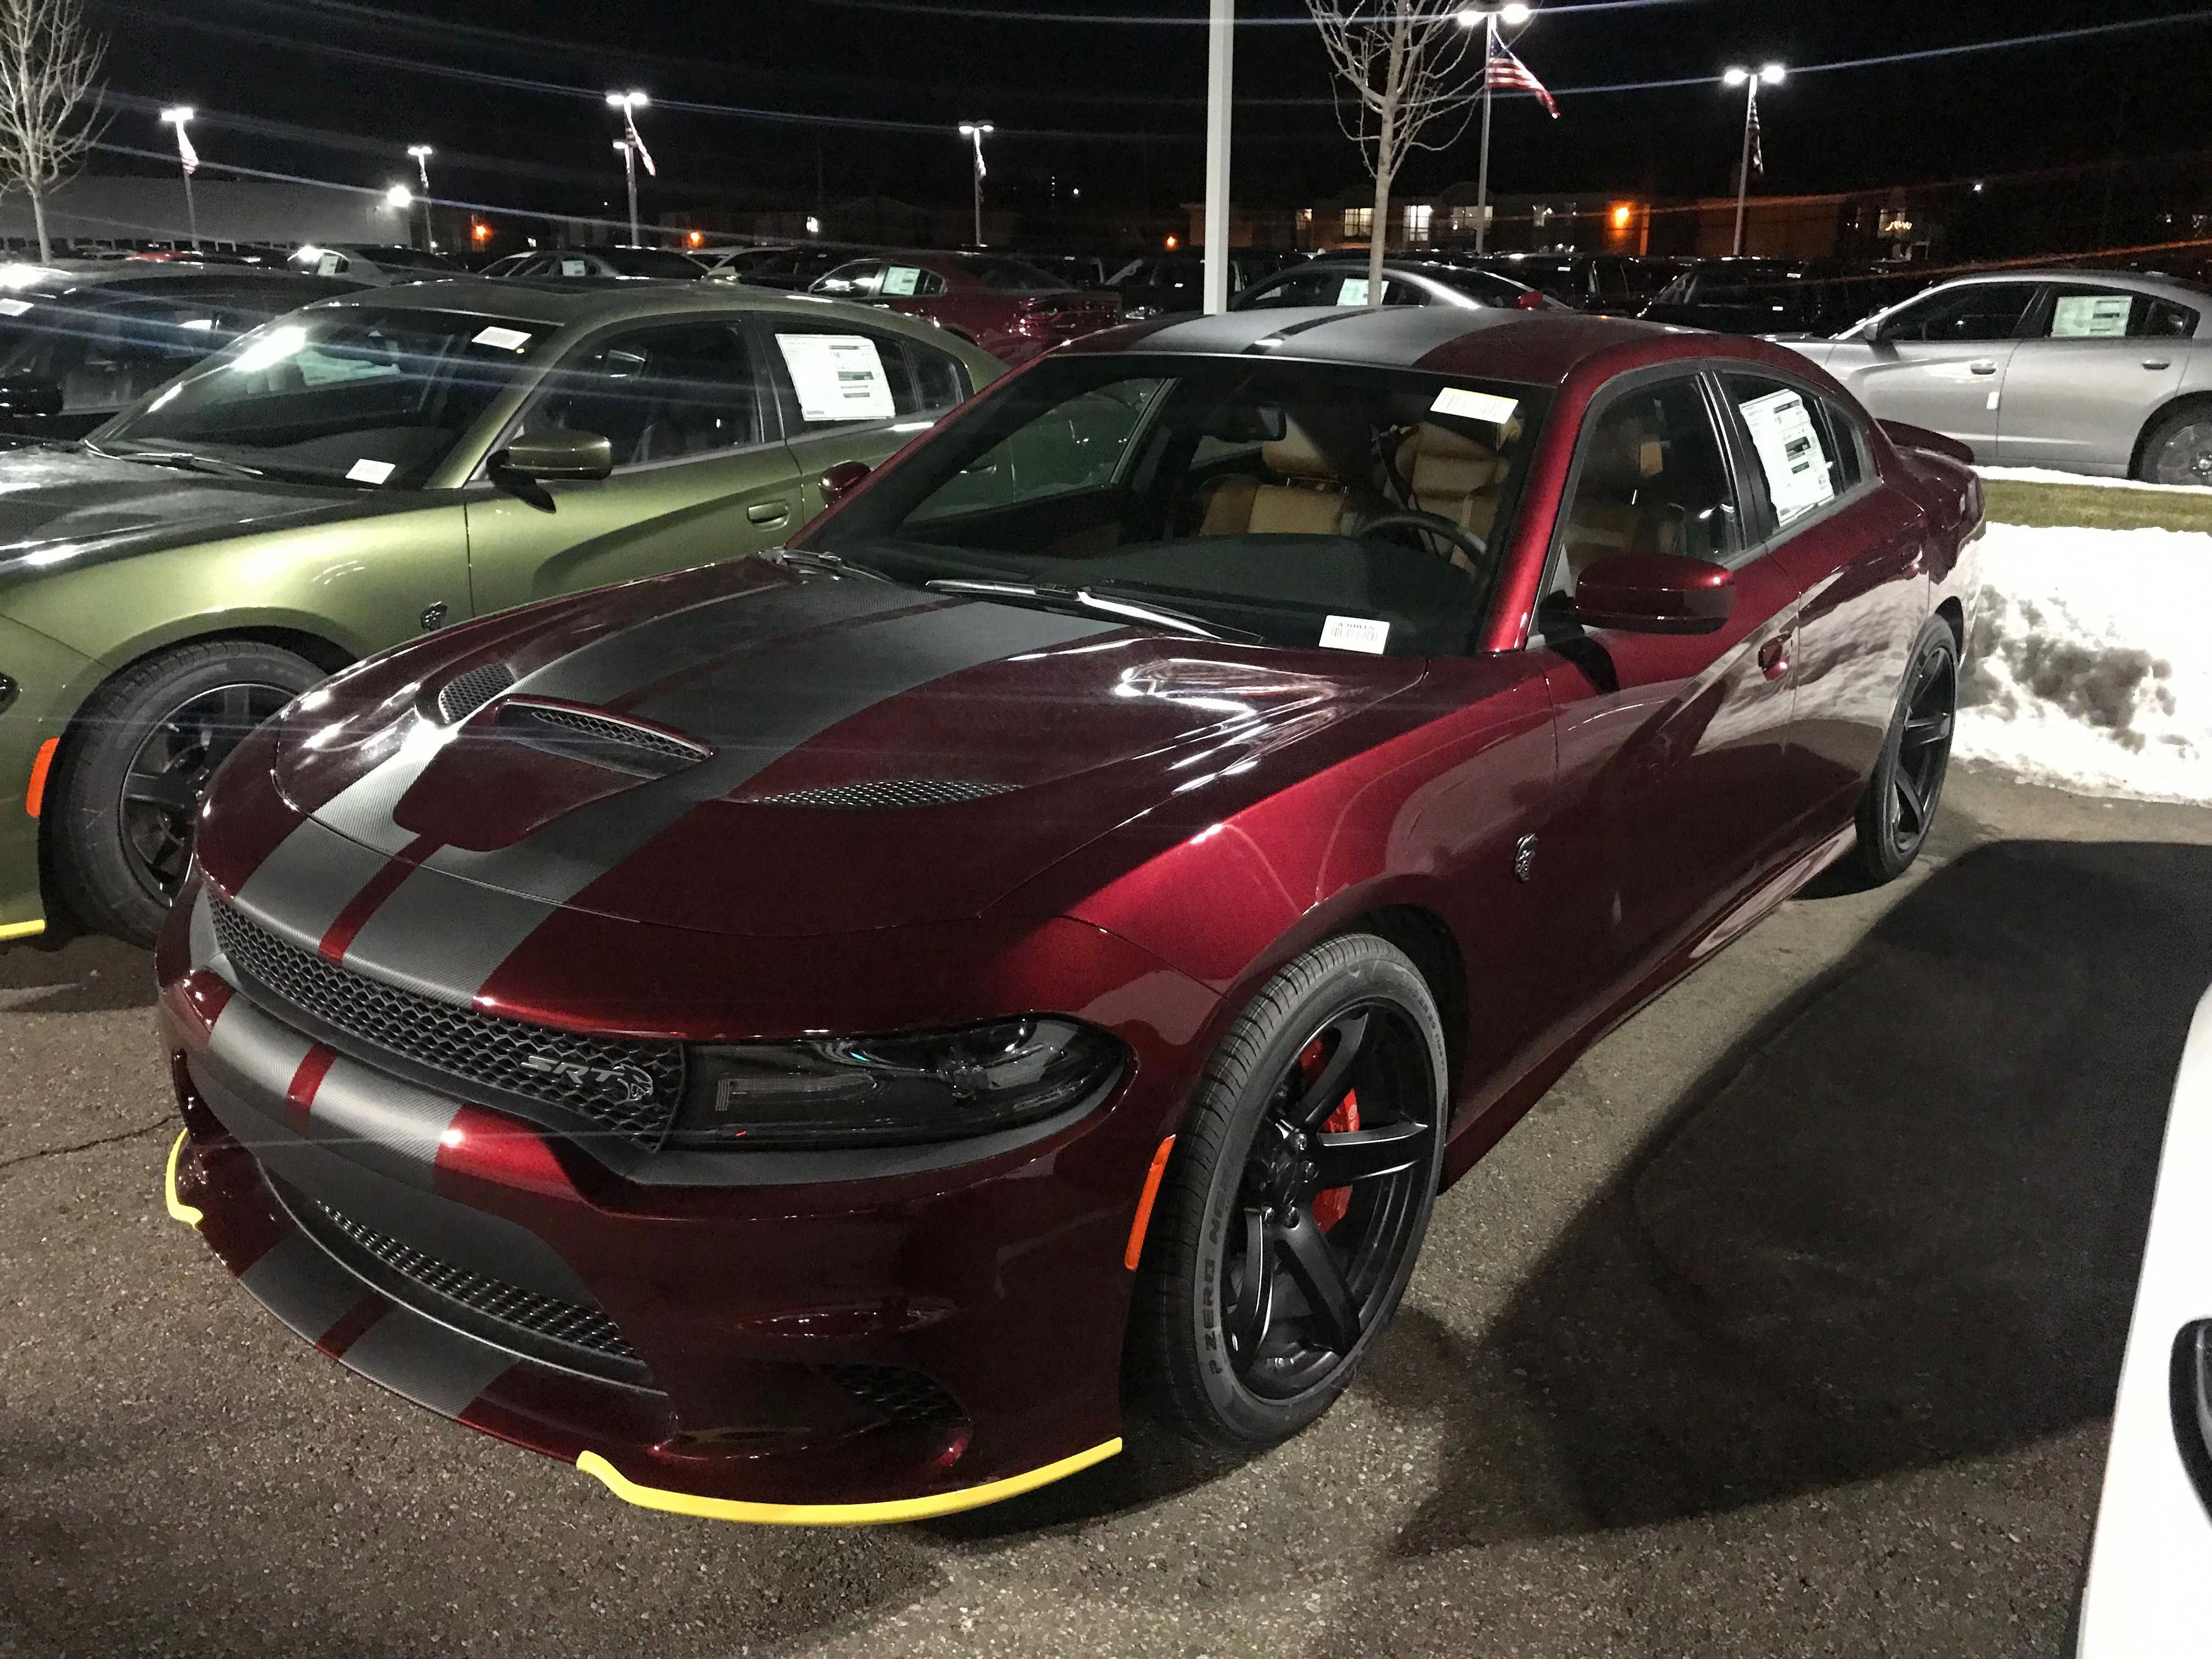 Dodge Charger Hellcat Painted In Octane Red W Carbon Central Stripes Photo Taken By Me 8interiordoors Dodge Charger Hellcat Dodge Charger Dodge Charger Srt